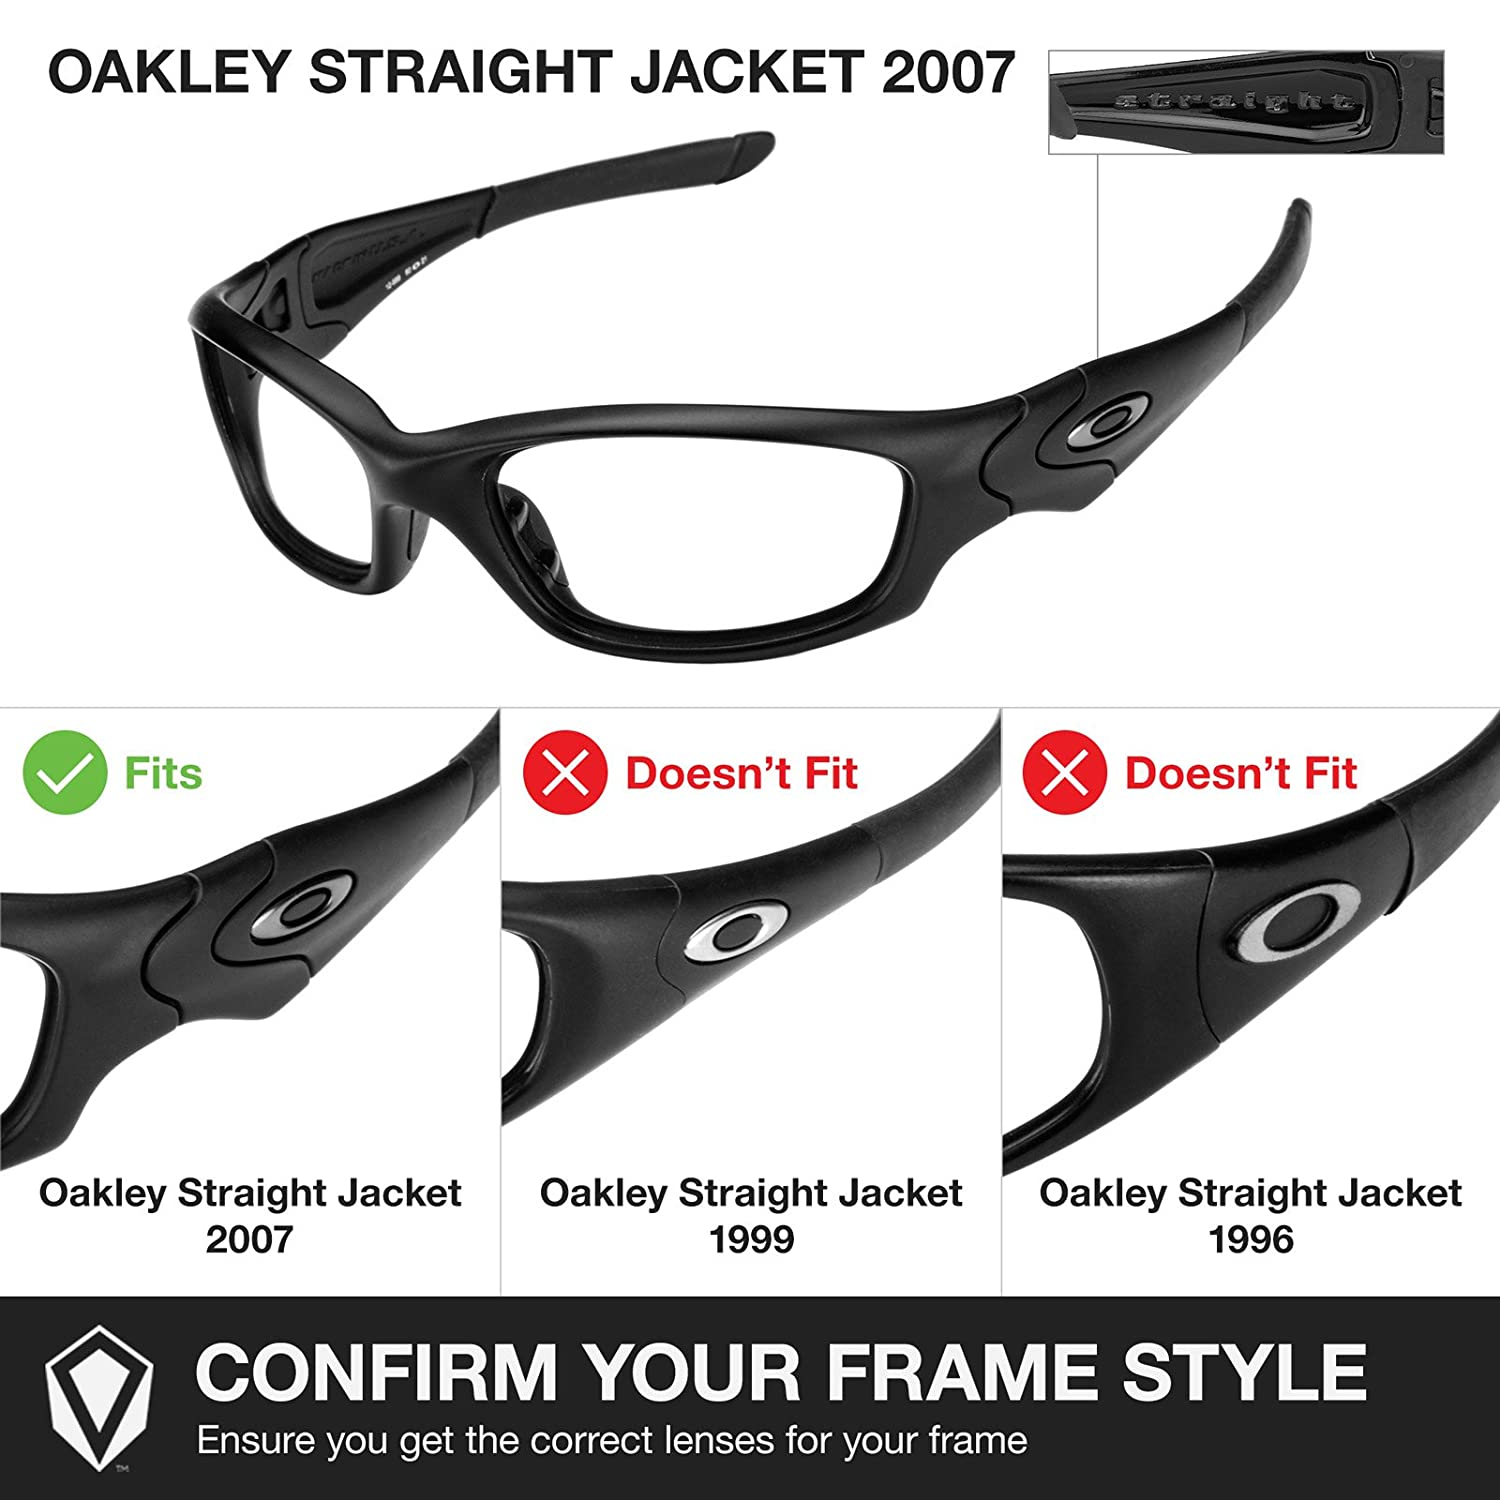 Revant Kit caoutchouc MaxGrip® Oakley Straight Jacket (2007) - Noir